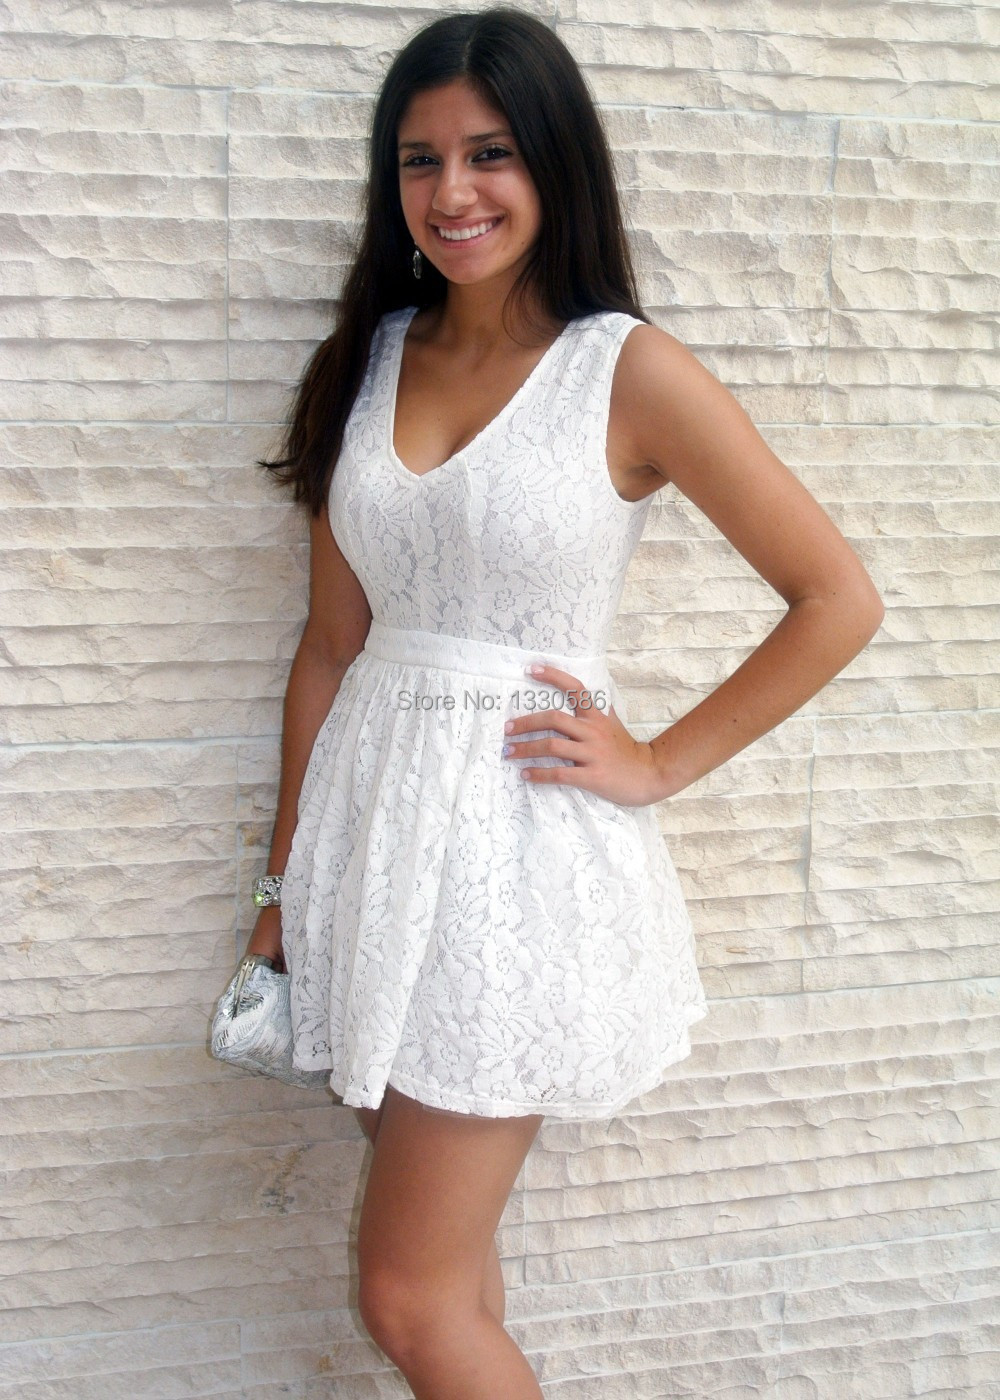 Black dress under white graduation gown - Sweet 16 Cocktail A Line V Neck Sleeveless Beautiful Simple White Lace Homecoming Dresses 2017 Under 100